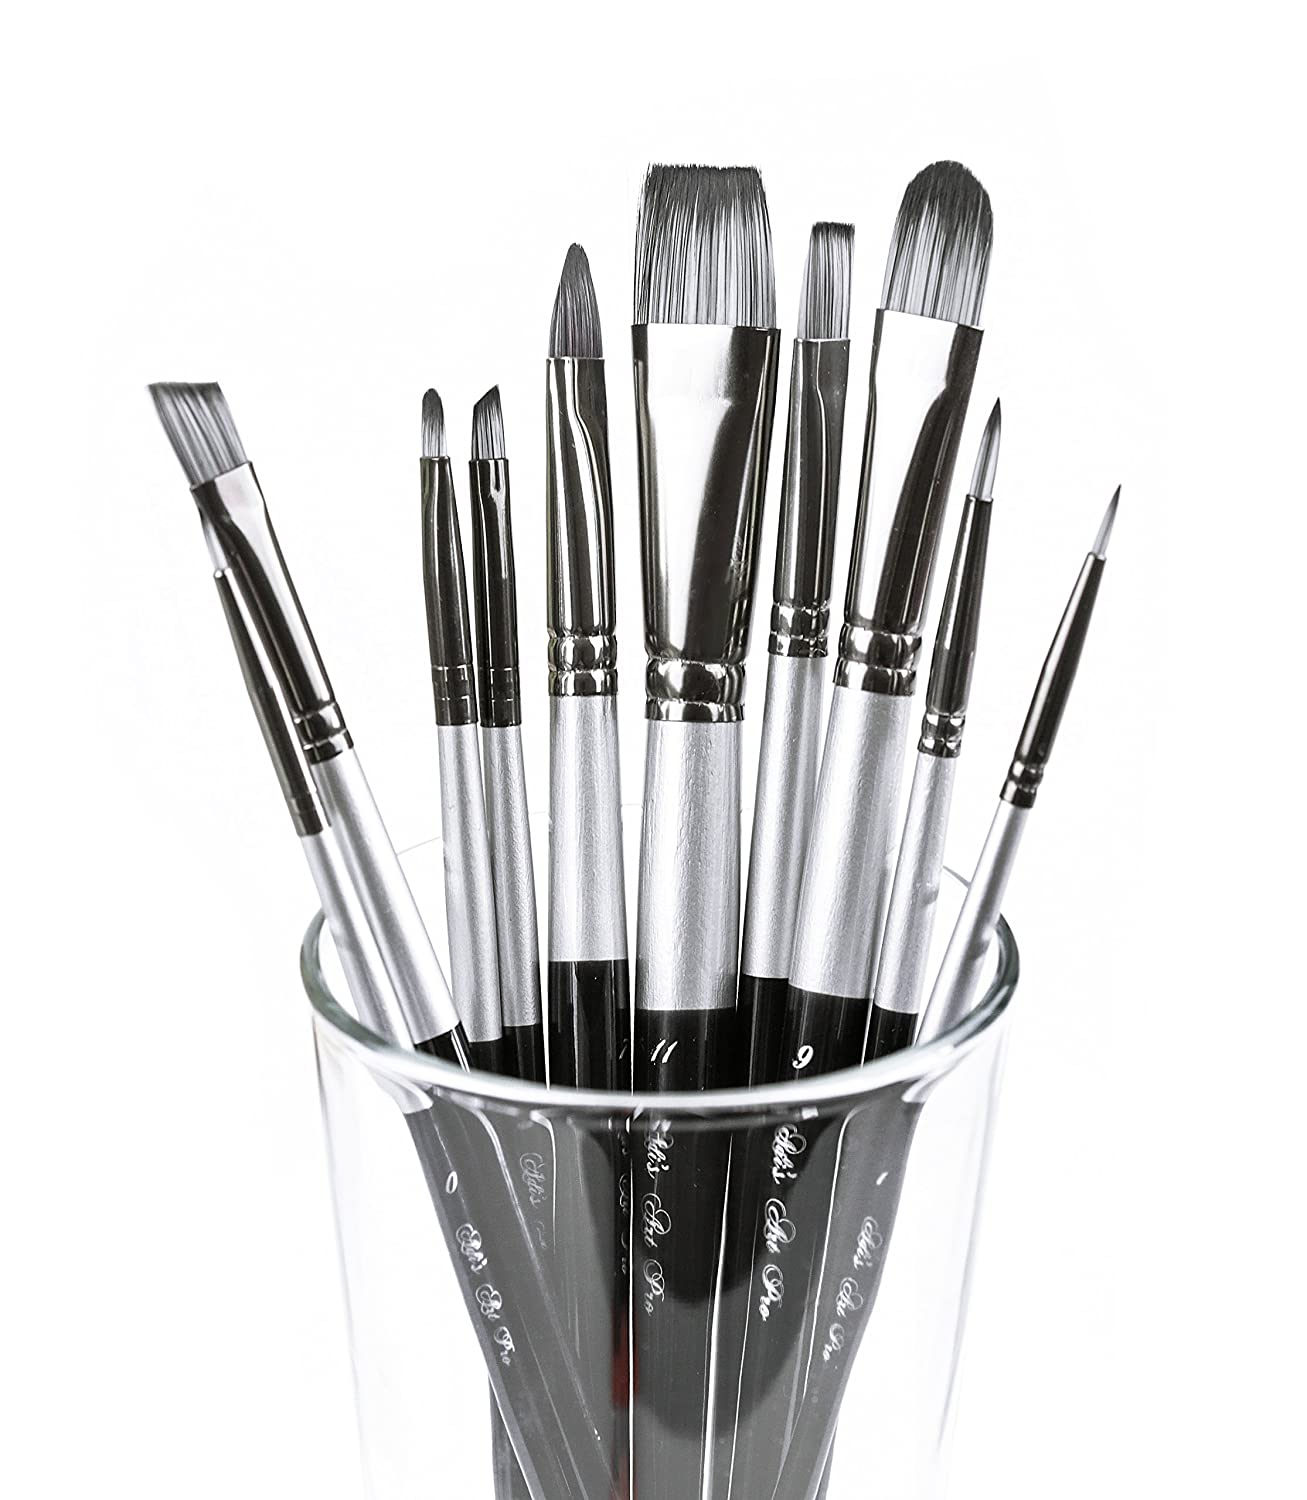 Adi's Art Pro 4336965684 Brushes Set for Acrylic Oil Watercolor, Artist Face and Body Professional Painting Kits with Synthetic Nylon Tips, 10 Pieces - Black, Size 2, Adi' s store